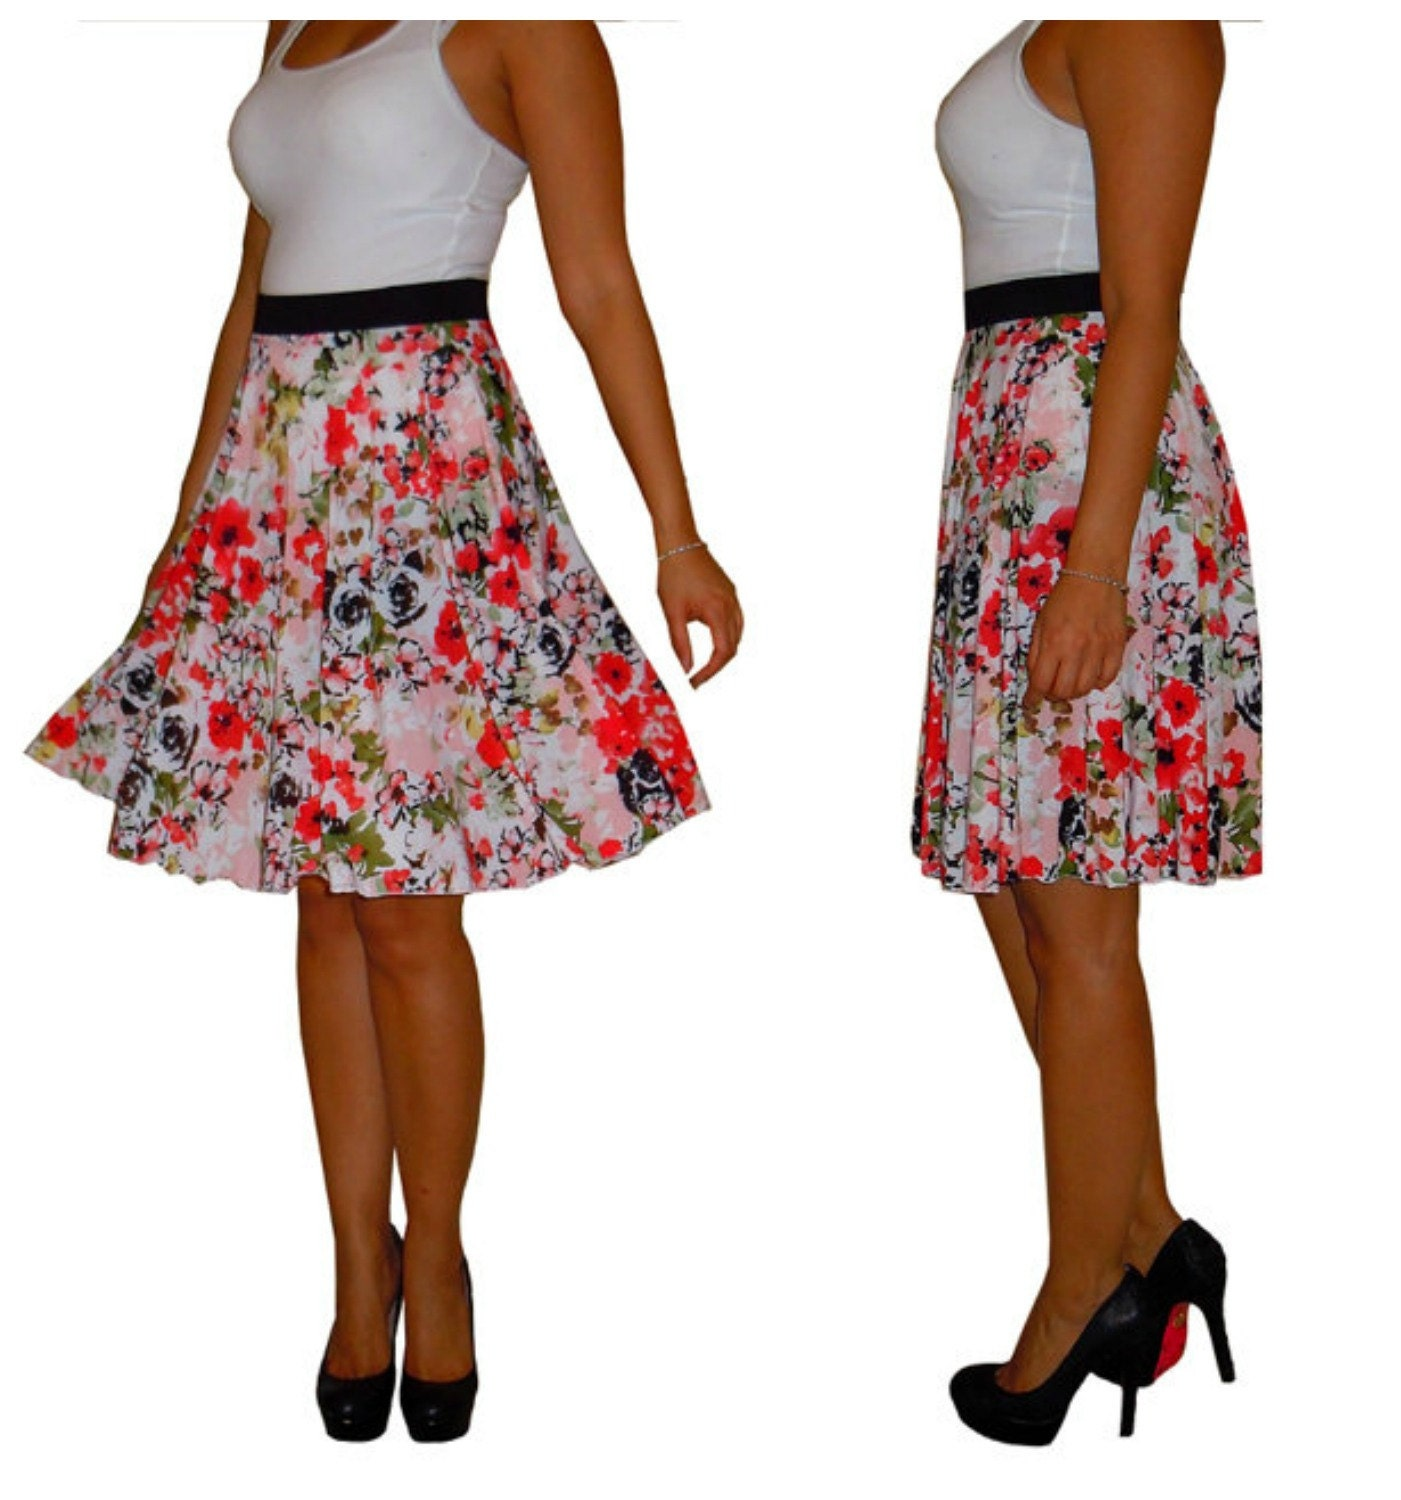 Treat her skirt like the skirt for a curvy adult, but in miniature scale- make the smaller circle for her hip measurement and the elastic for her waist measurement. That way, it should go over her hips just fine but still be cinched in.